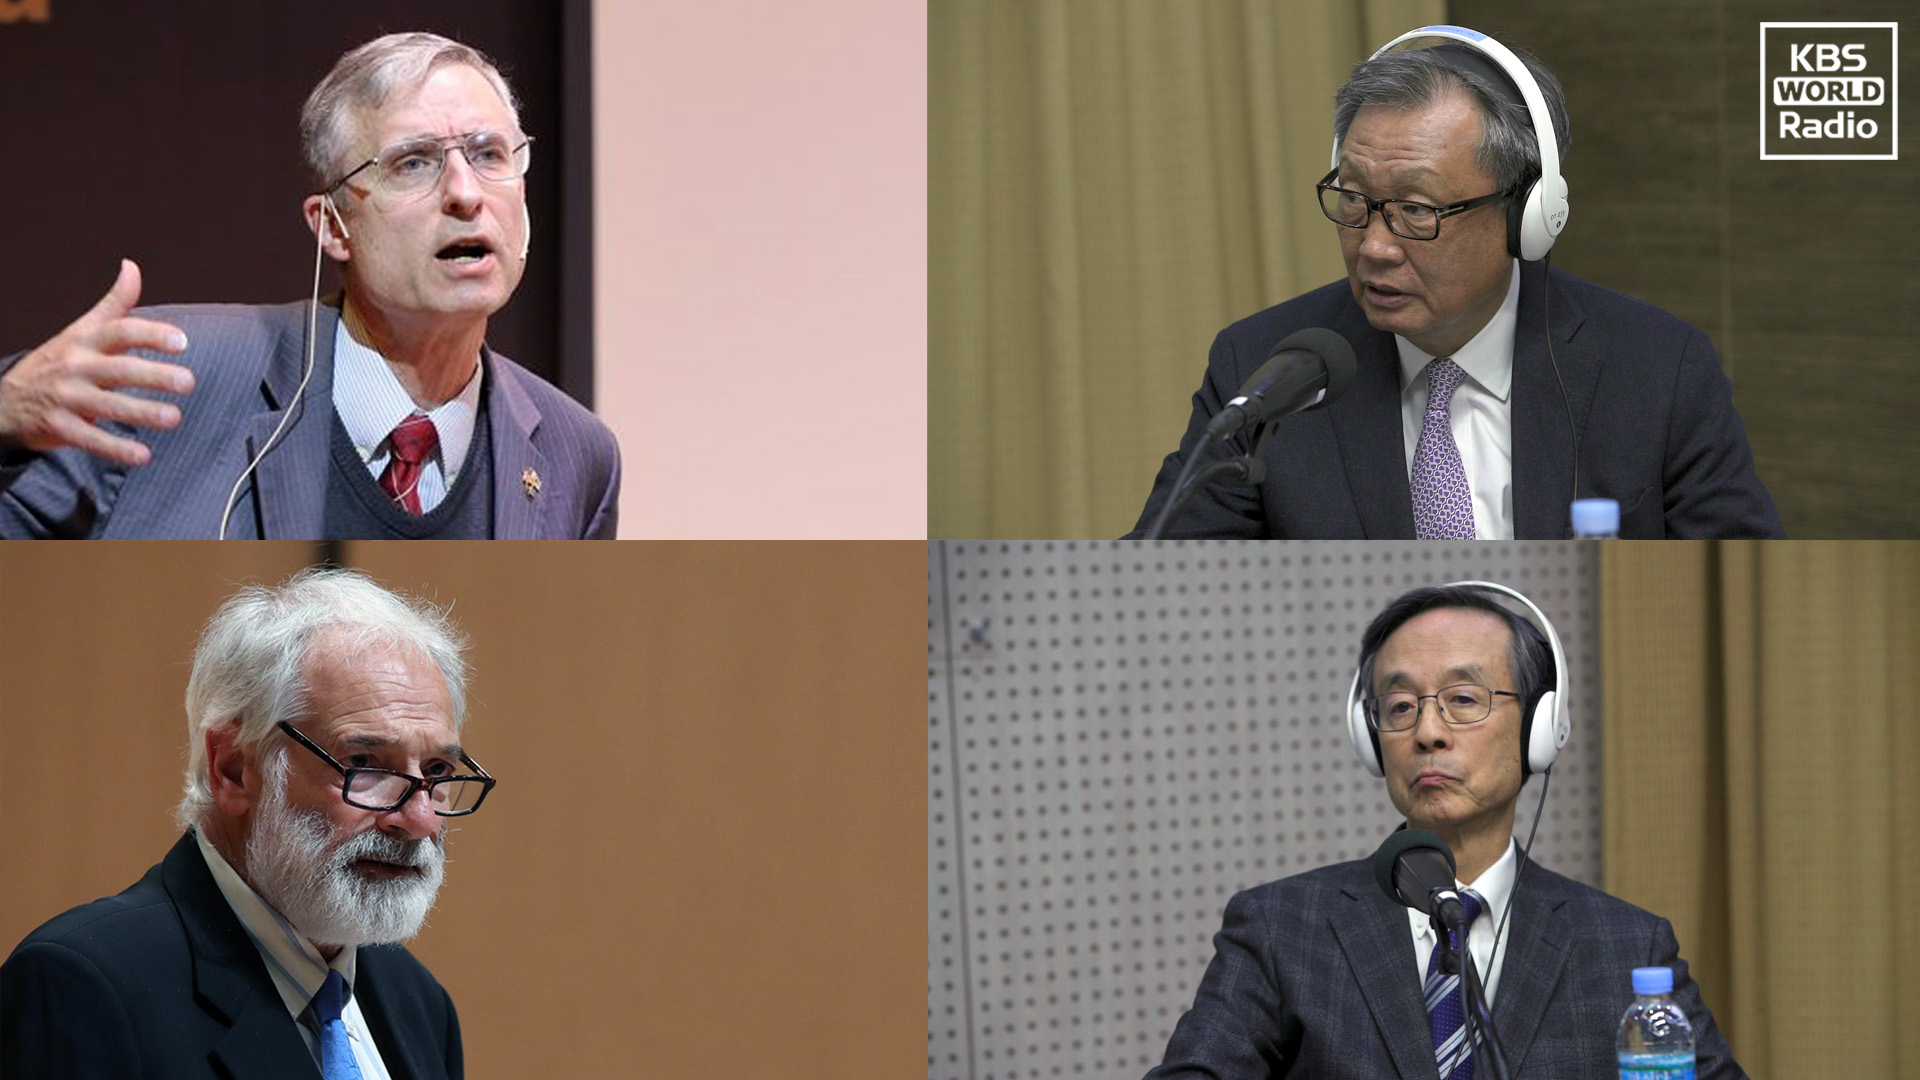 Experts Agree 2019 Will Continue to be Uphill Situation Regarding N. Korea